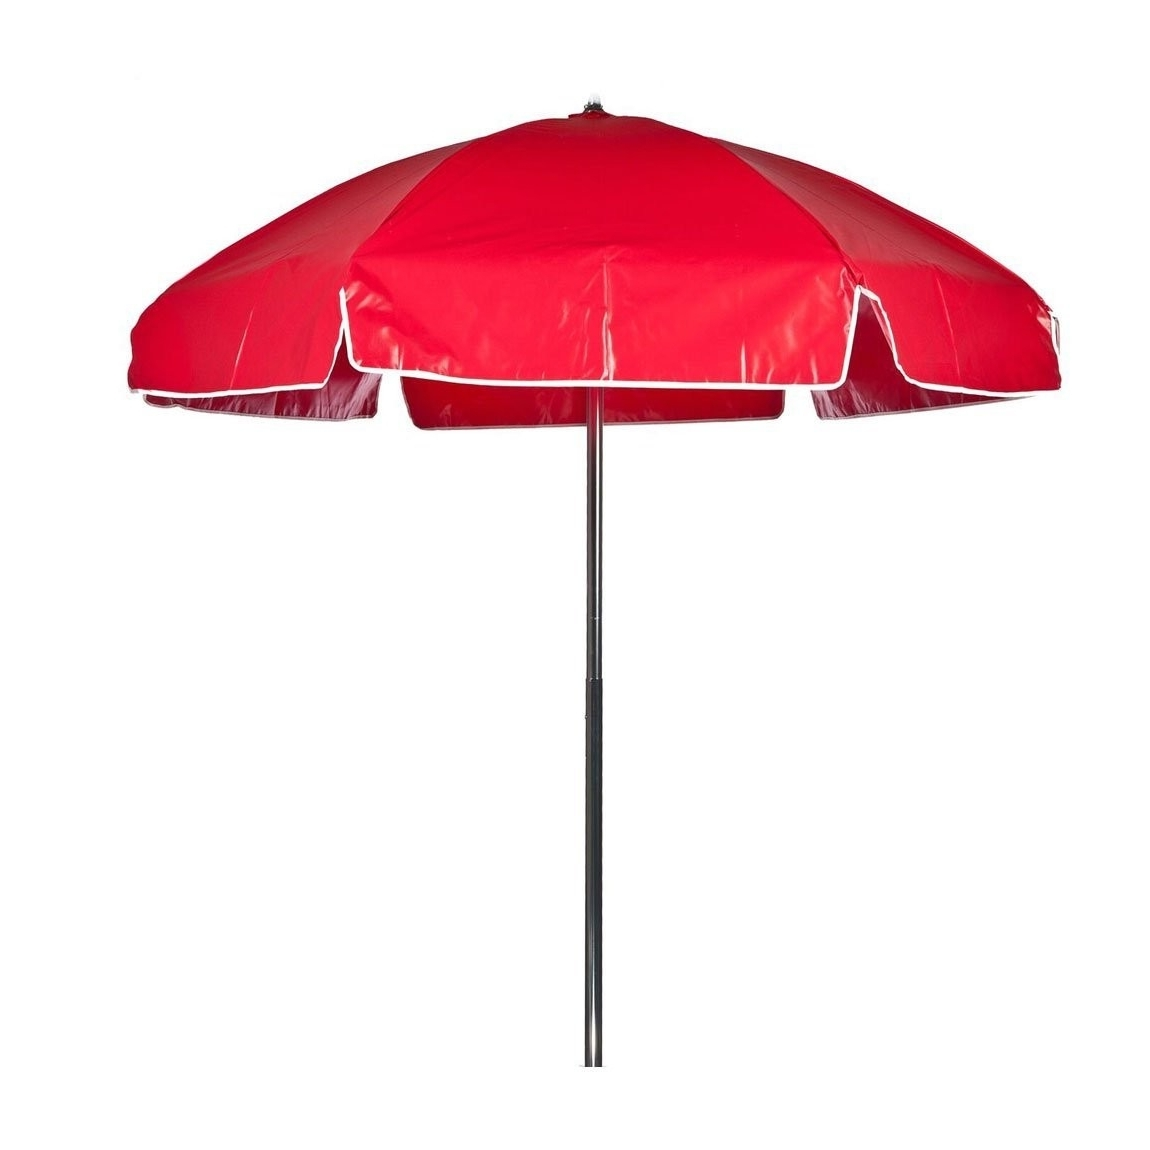 Vinyl Patio Umbrellas Throughout Preferred Red Vinyl Lifeguard Umbrella – Tilt Greateststores (View 18 of 20)